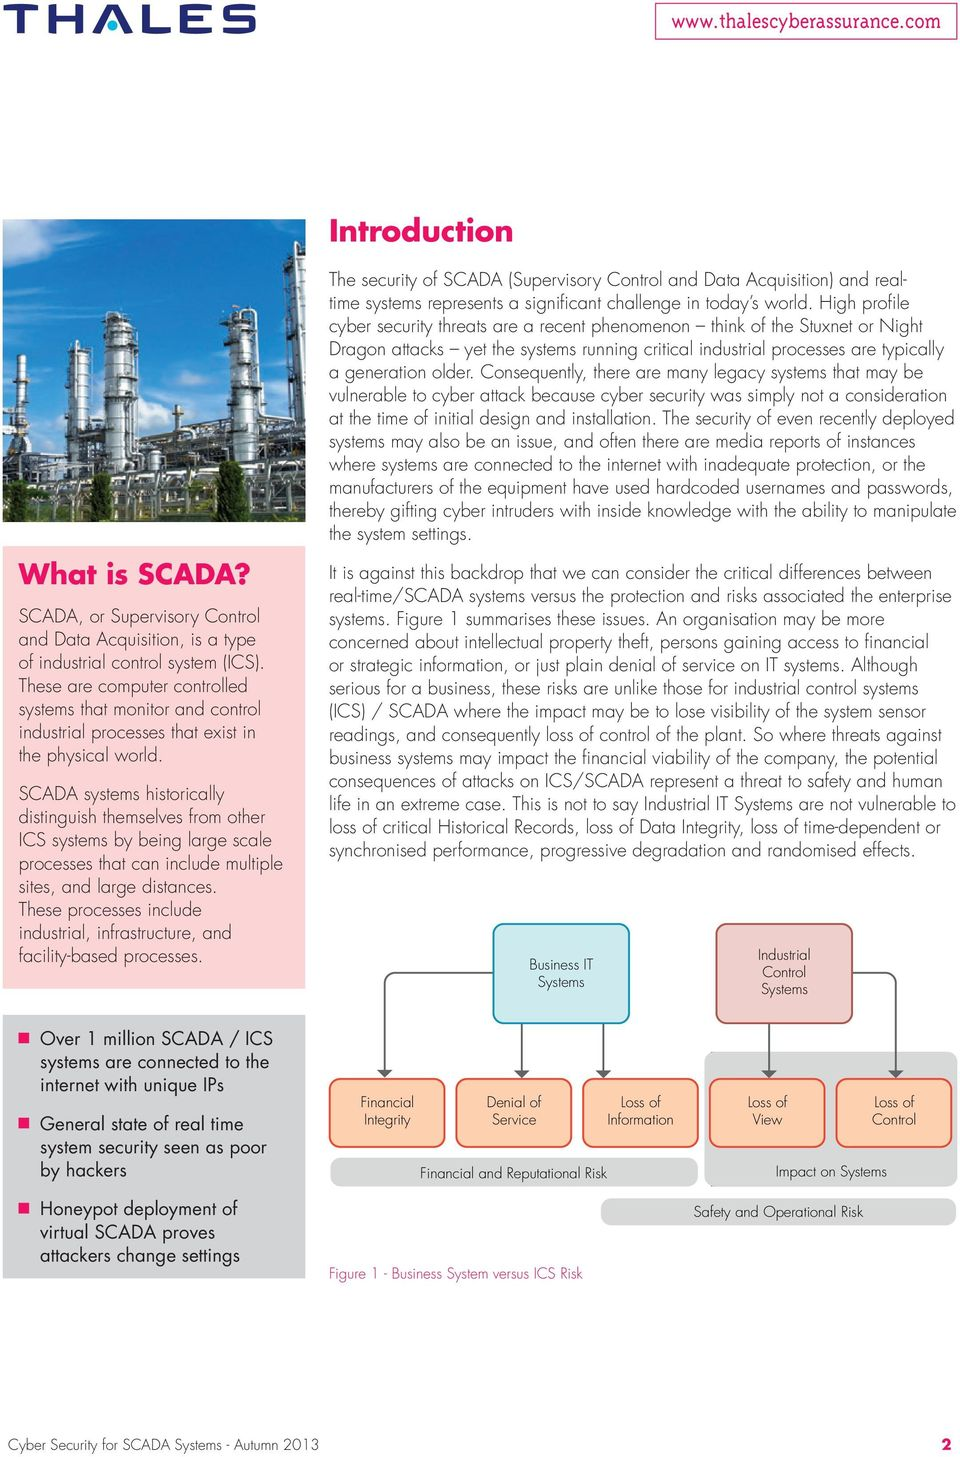 SCADA systems historically distinguish themselves from other ICS systems by being large scale processes that can include multiple sites, and large distances.